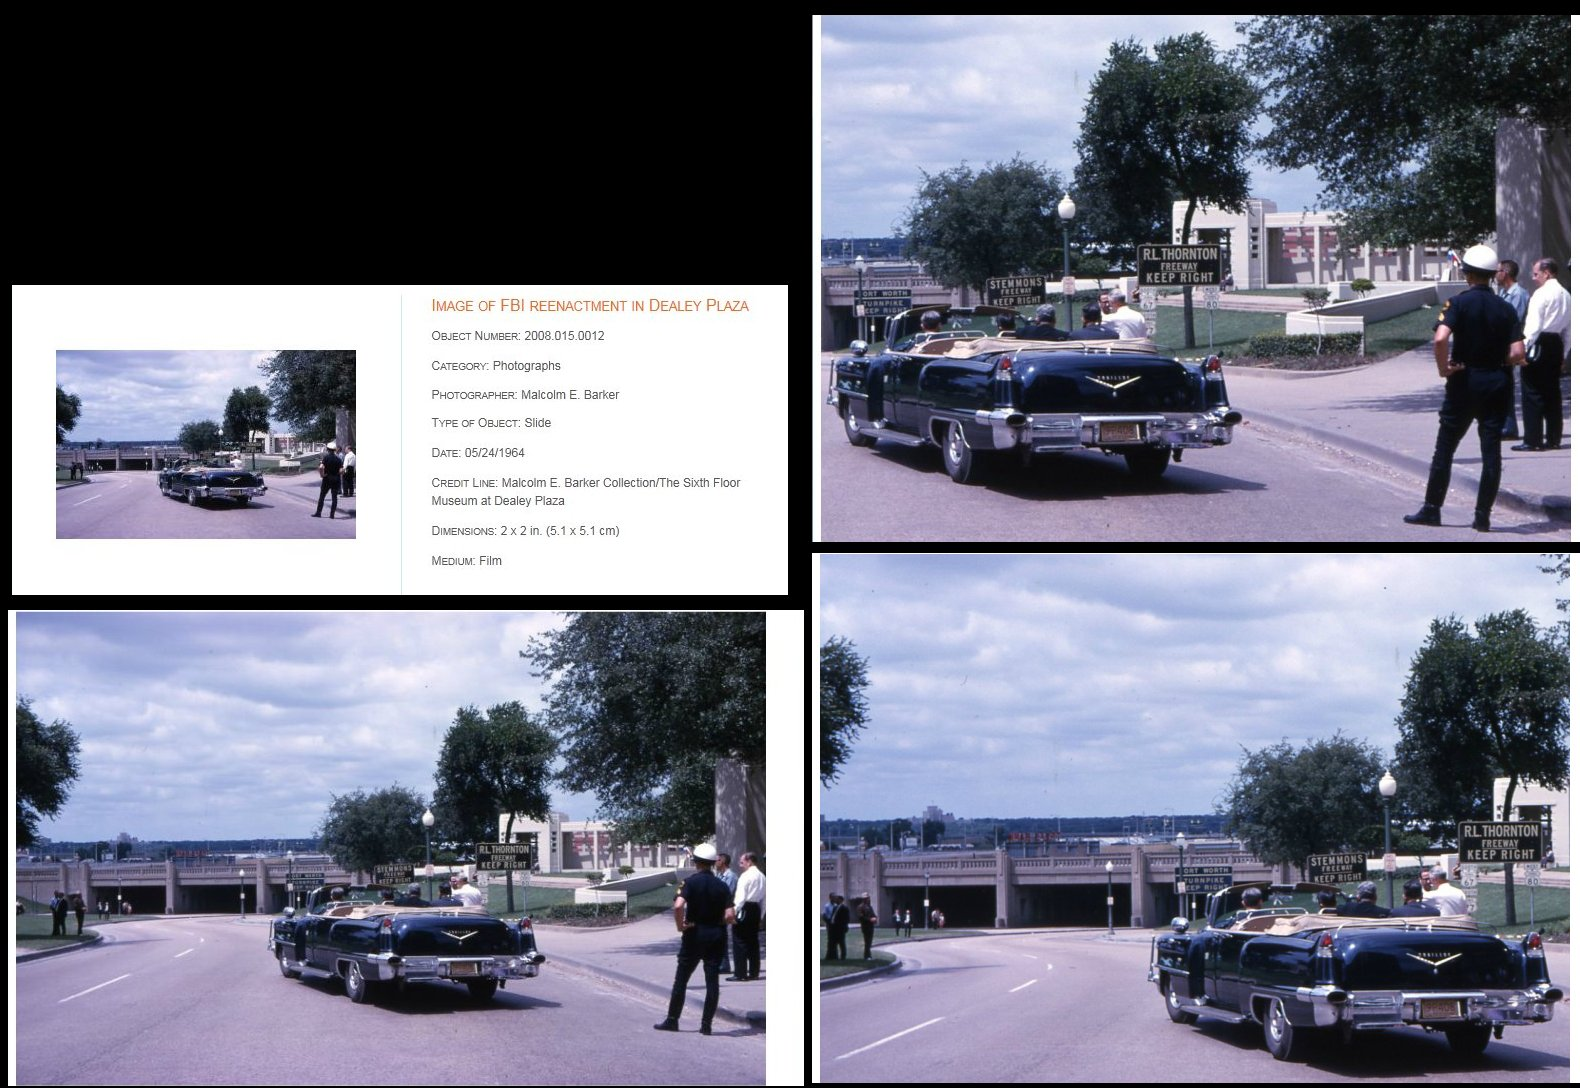 1964_FBI_REENACTMENT_color3.jpg